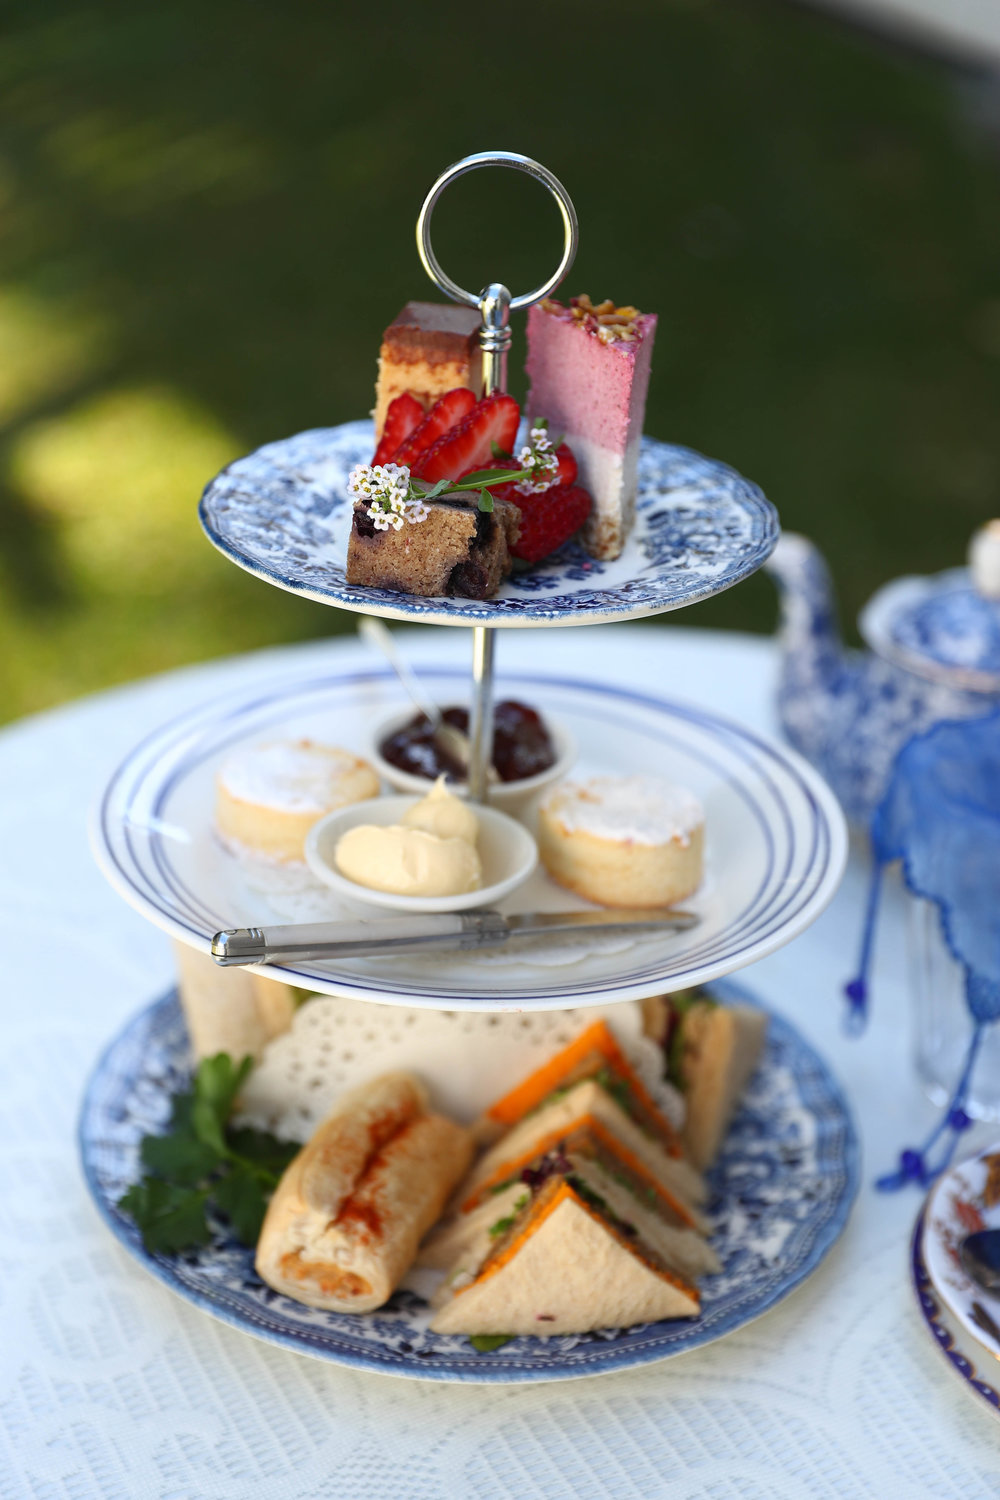 Vegan high tea is served on a beautiful, vintage tiered tray